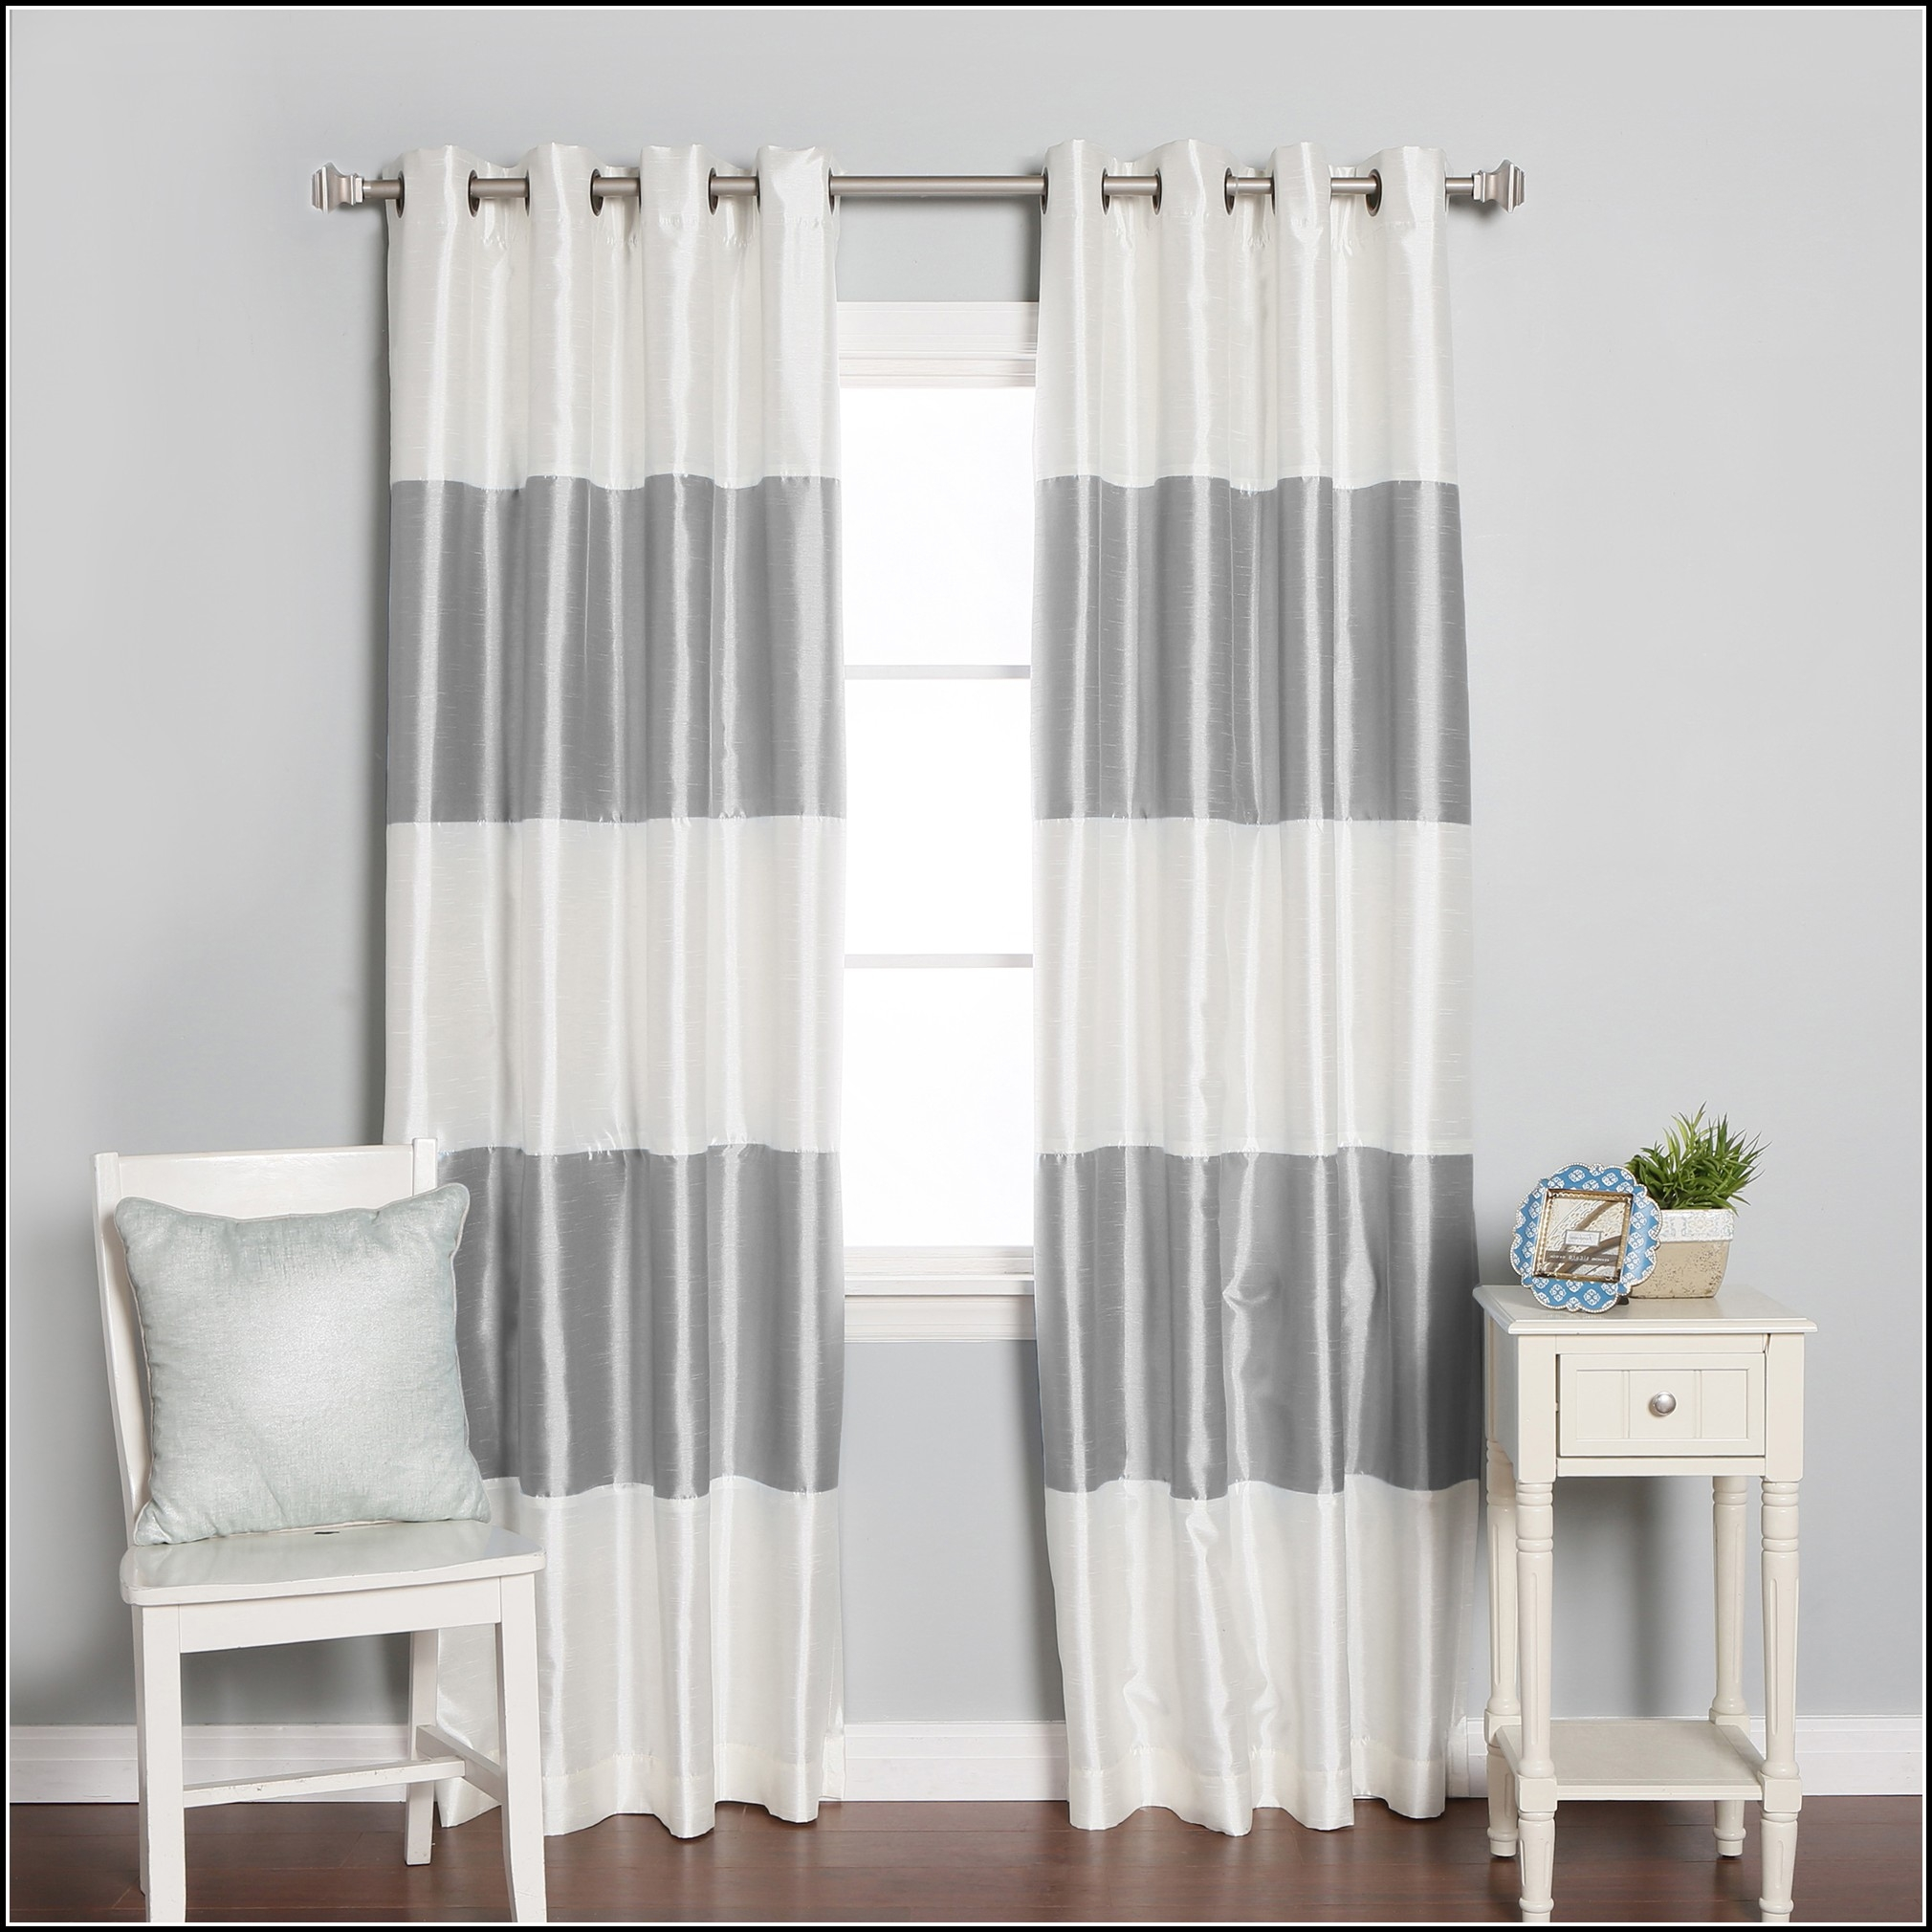 White And Grey Blackout Curtains Curtains Home Decorating Throughout White Opaque Curtains (Image 11 of 15)